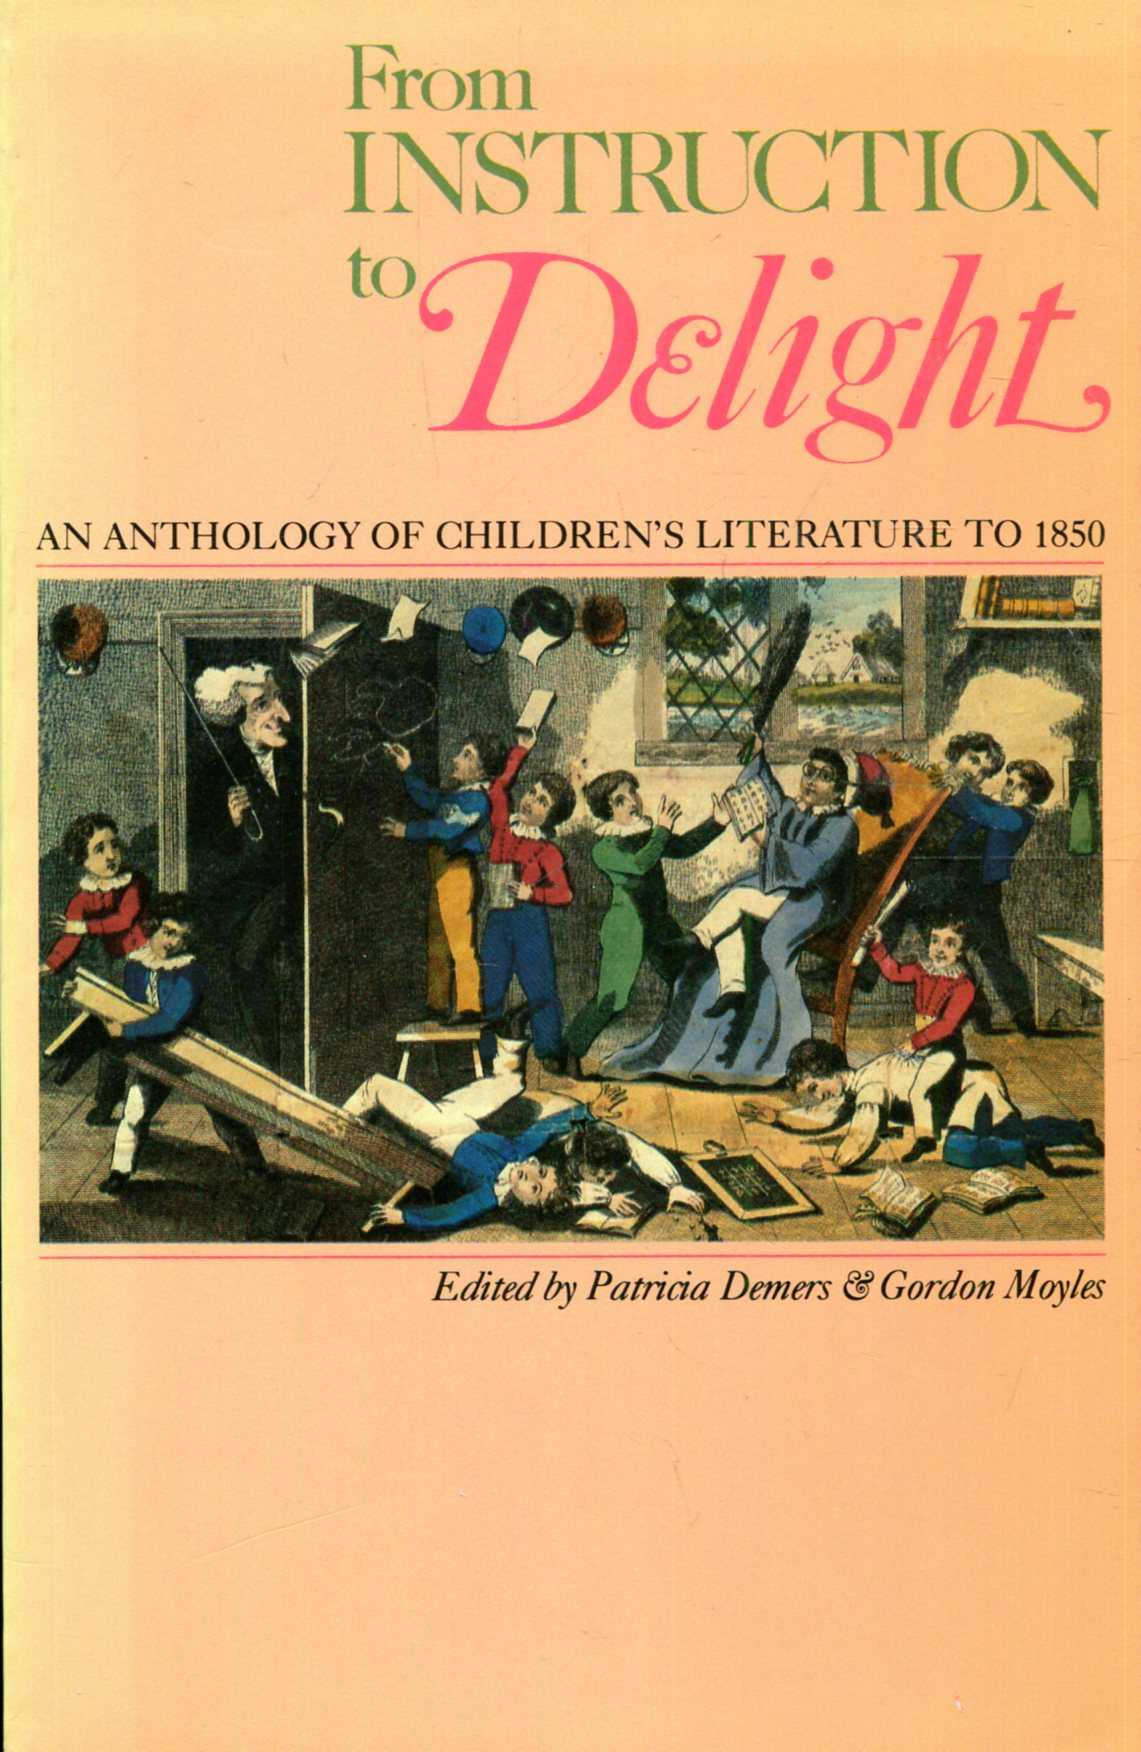 Image for From Instruction to Delight : An Anthology of Children's Literature to 1850